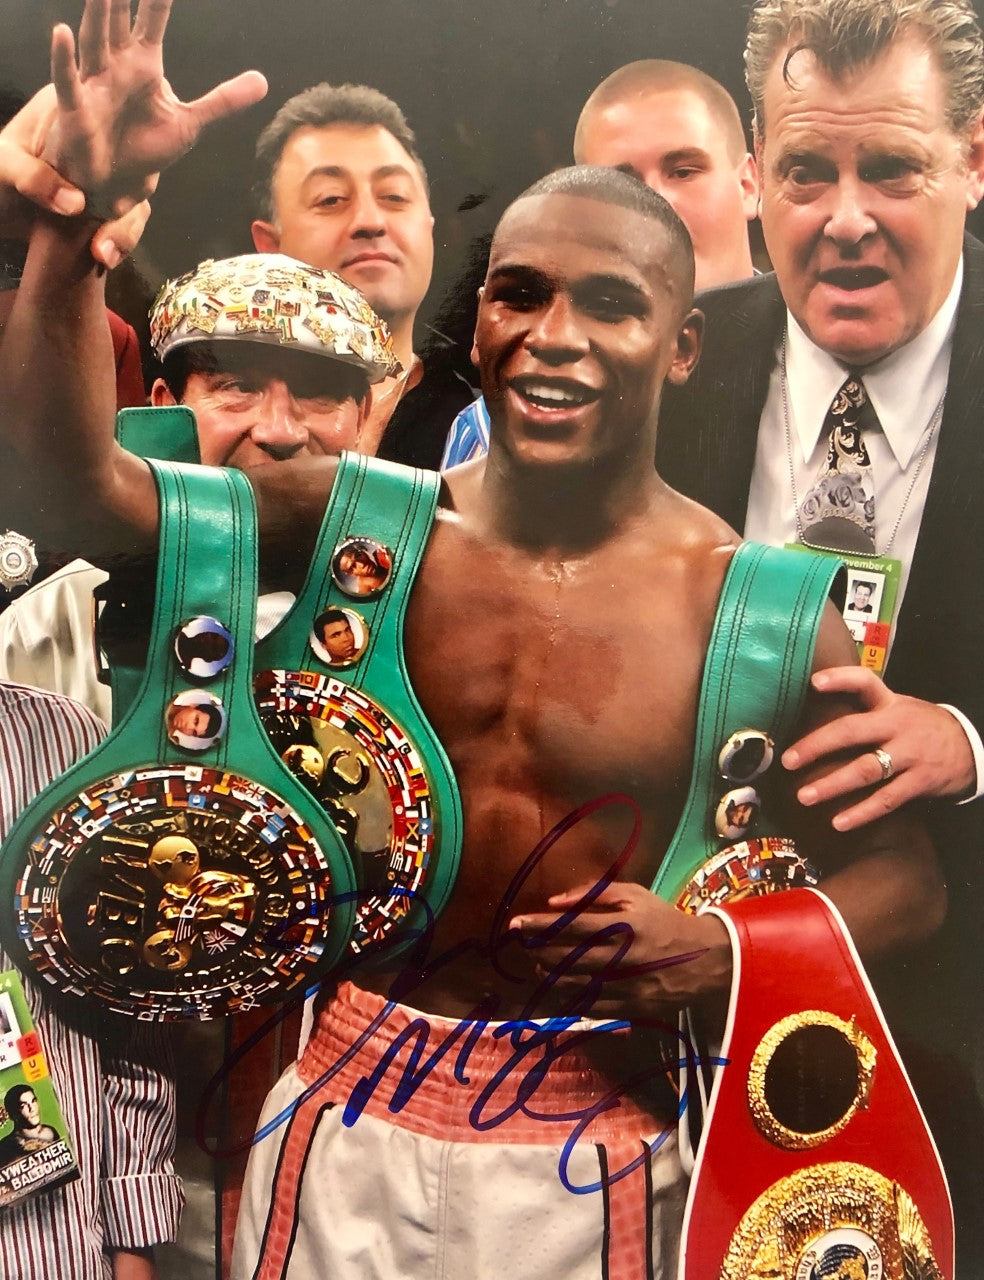 Floyd Mayweather Jr. Autographed Photo 11x14 size Young Floyd